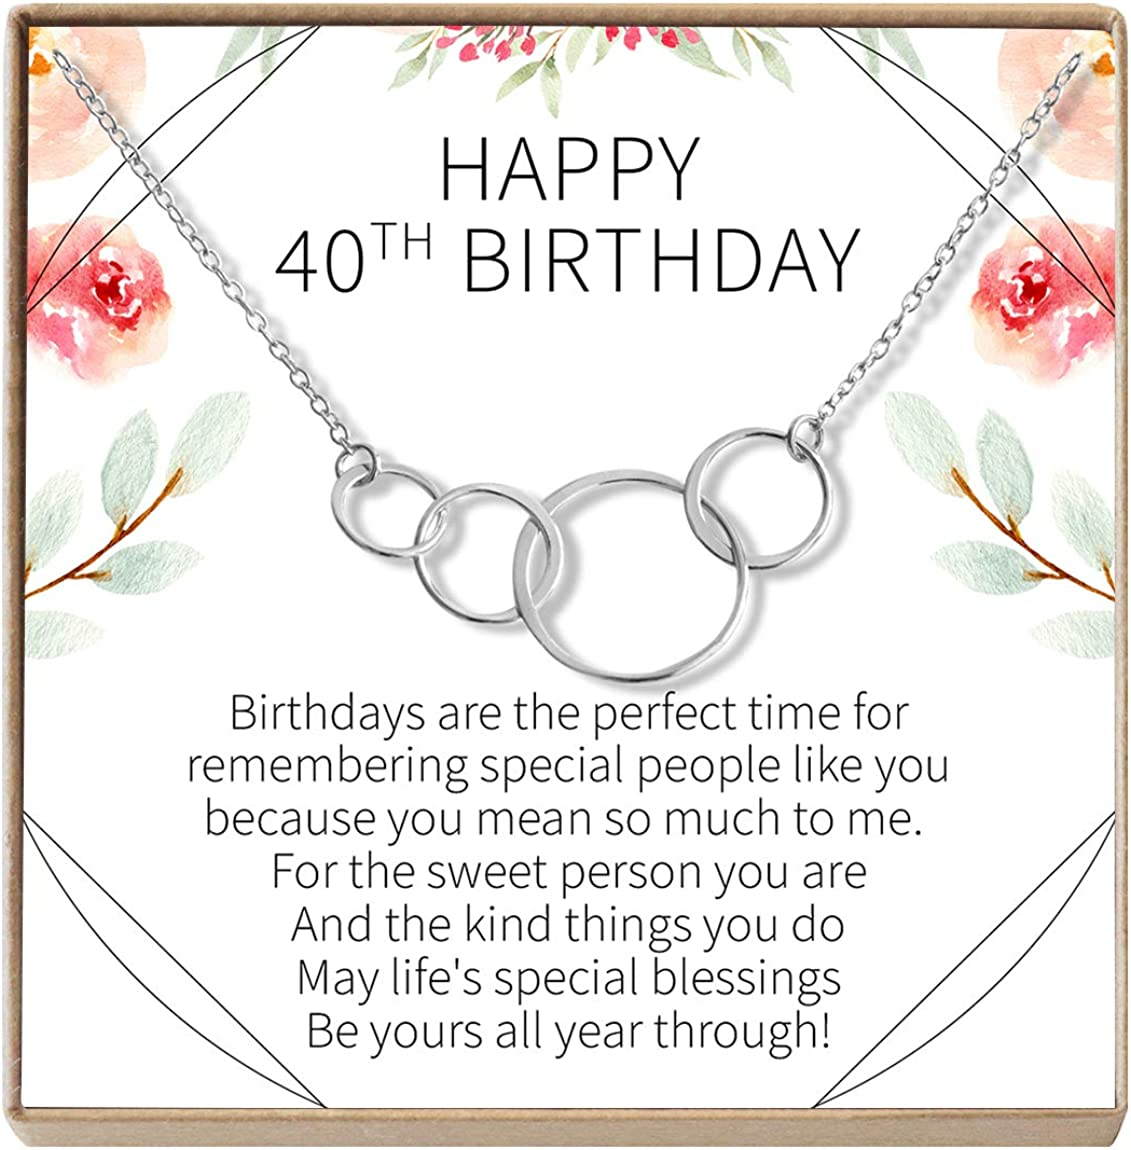 Jewlery Gift for Her Dear Ava 40th Birthday Gift Necklace: Birthday Gift Silver-Plated-Brass, NA 4 Asymmetrical Circles